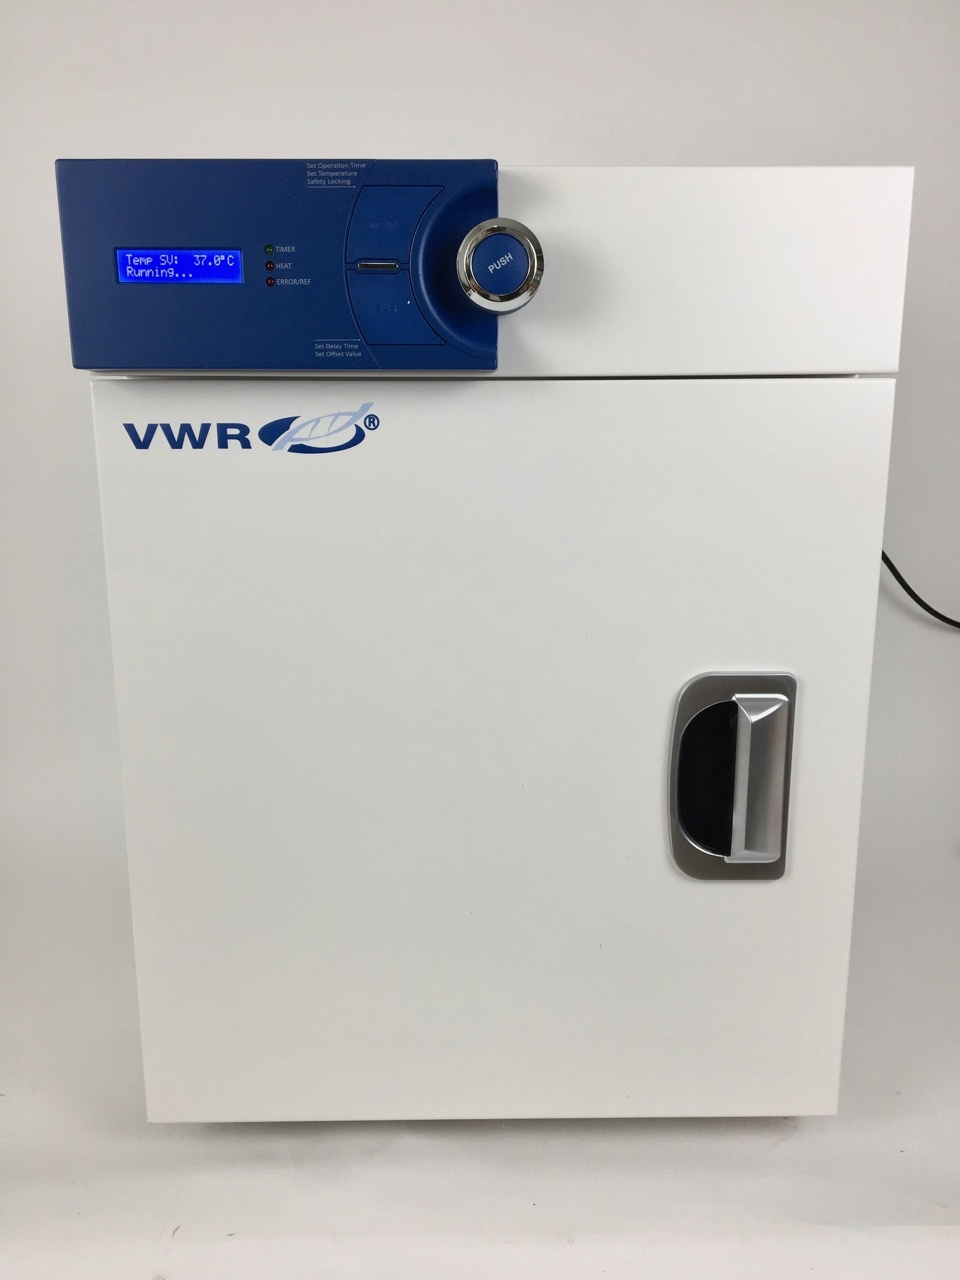 VWR Gravity Convection General Incubator (32 L)